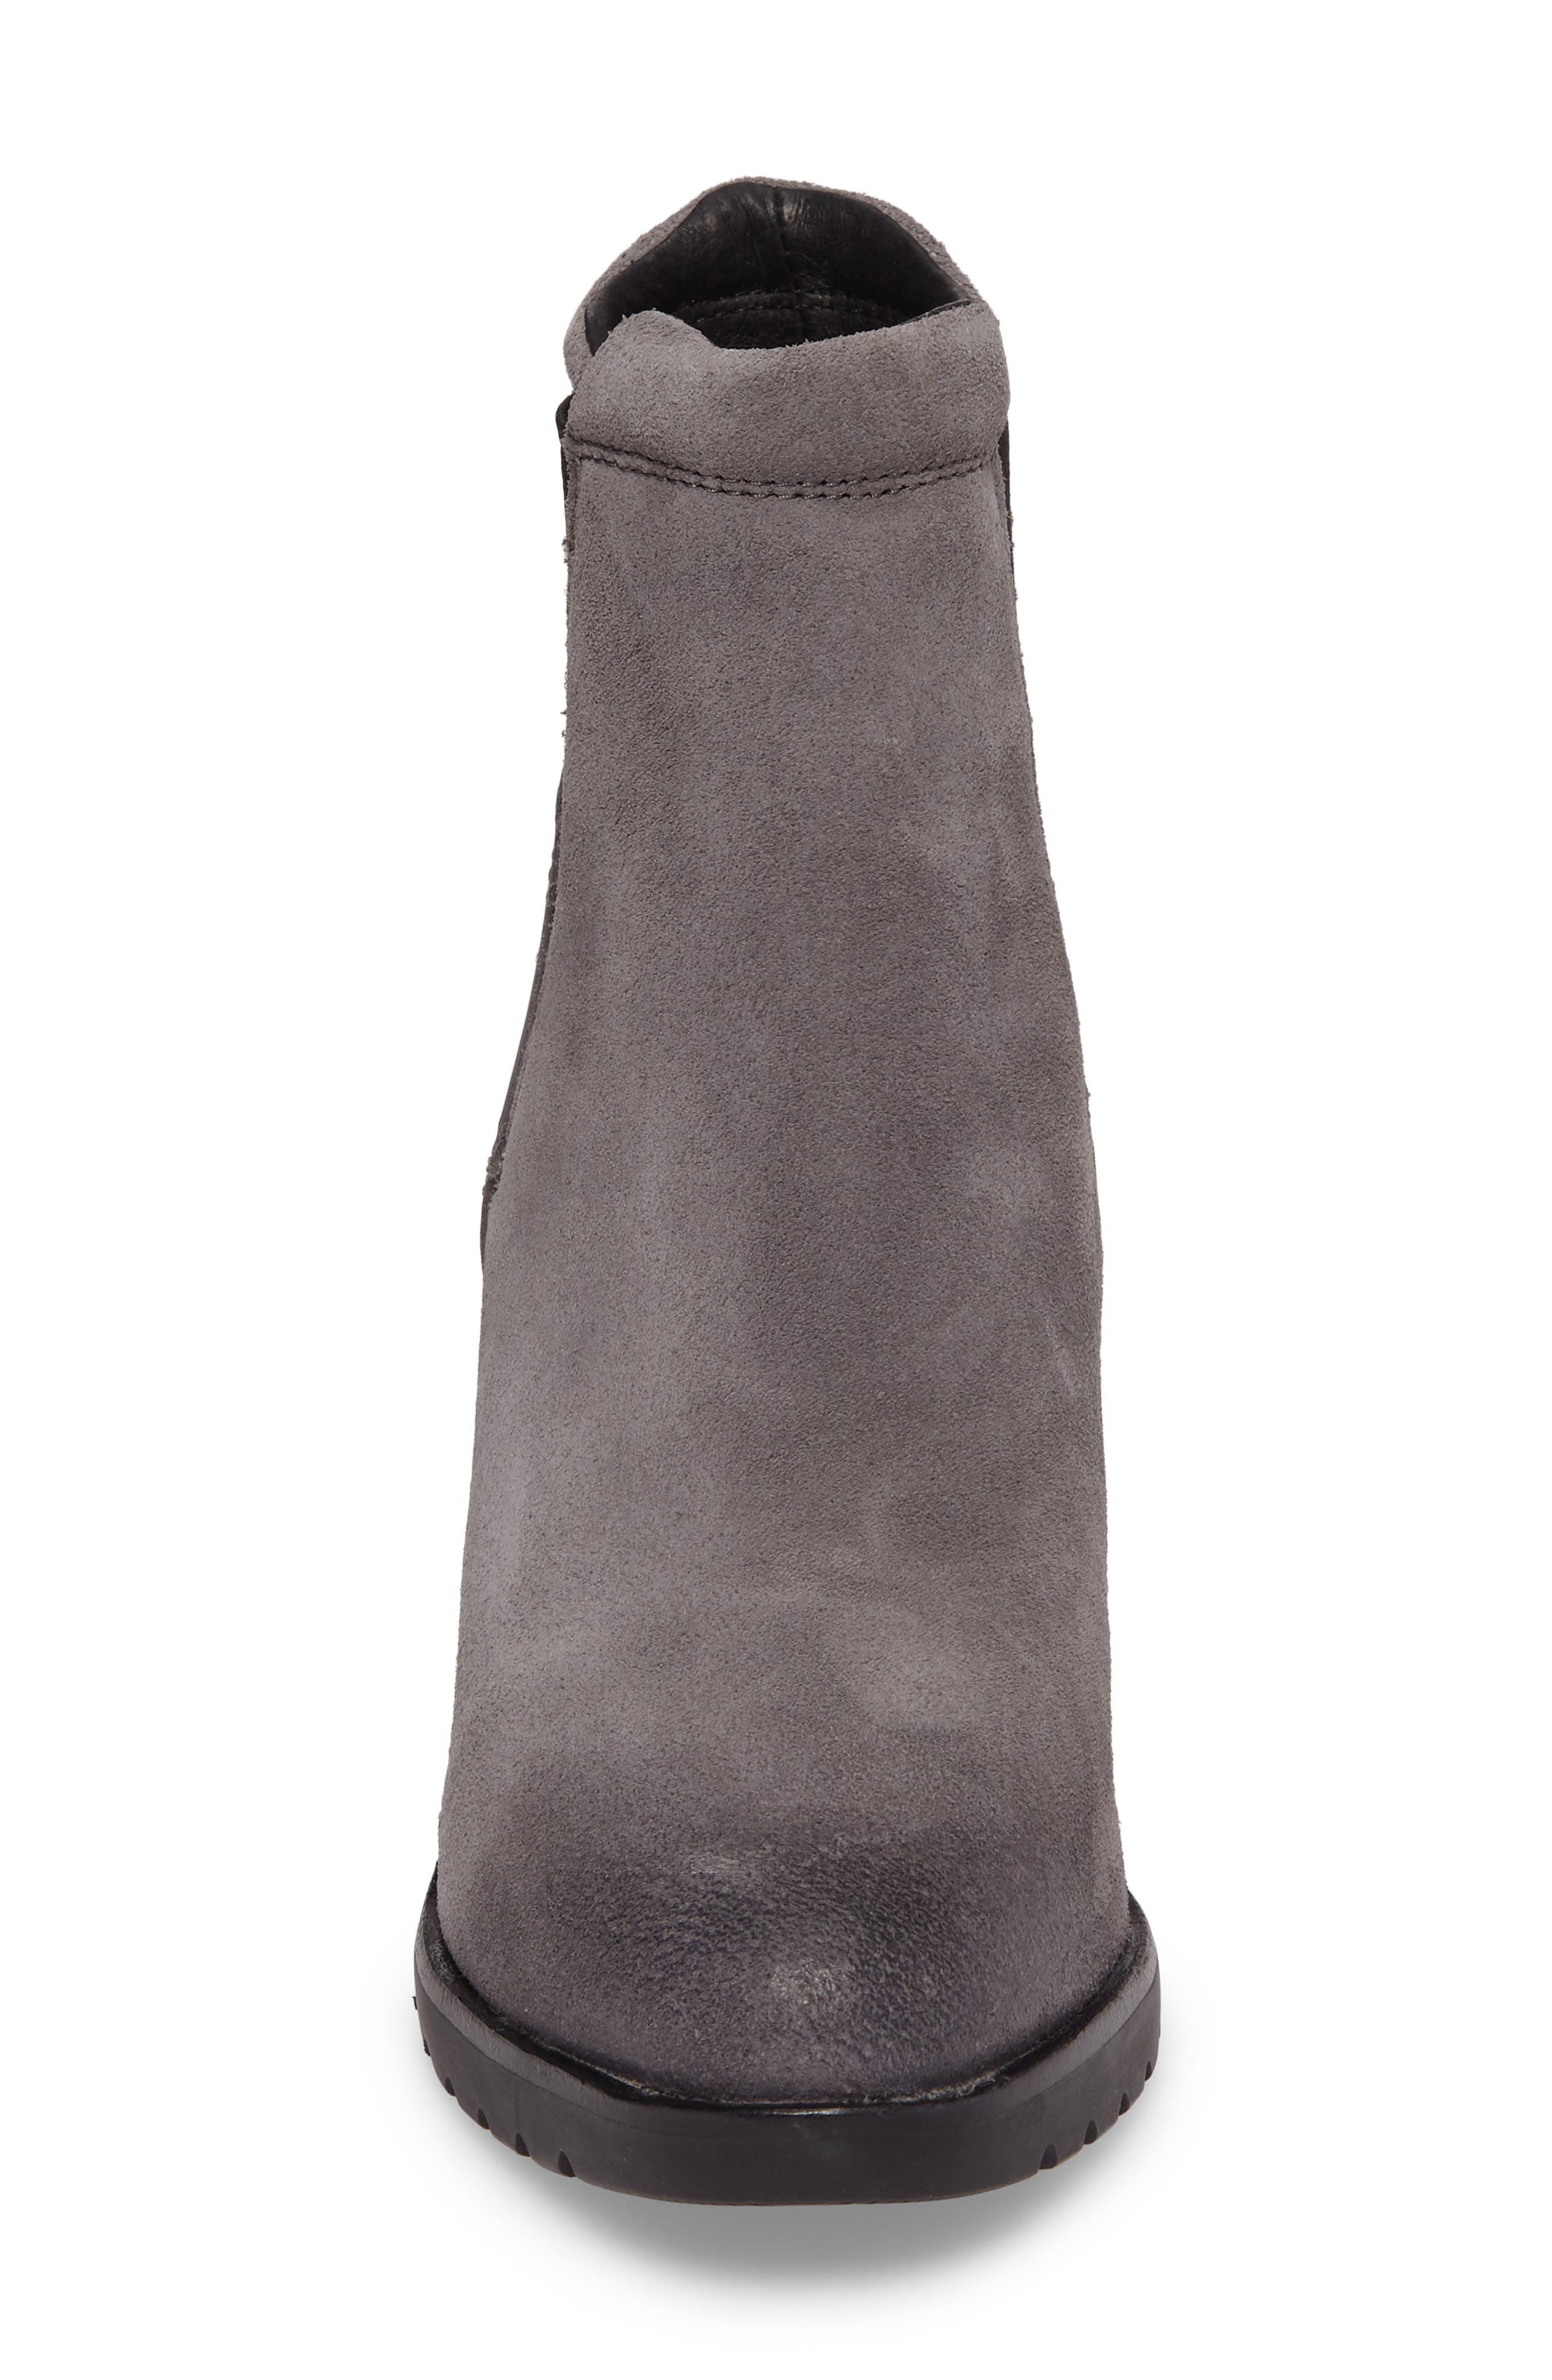 After Hours Chelsea Boot,                             Alternate thumbnail 4, color,                             Quarry